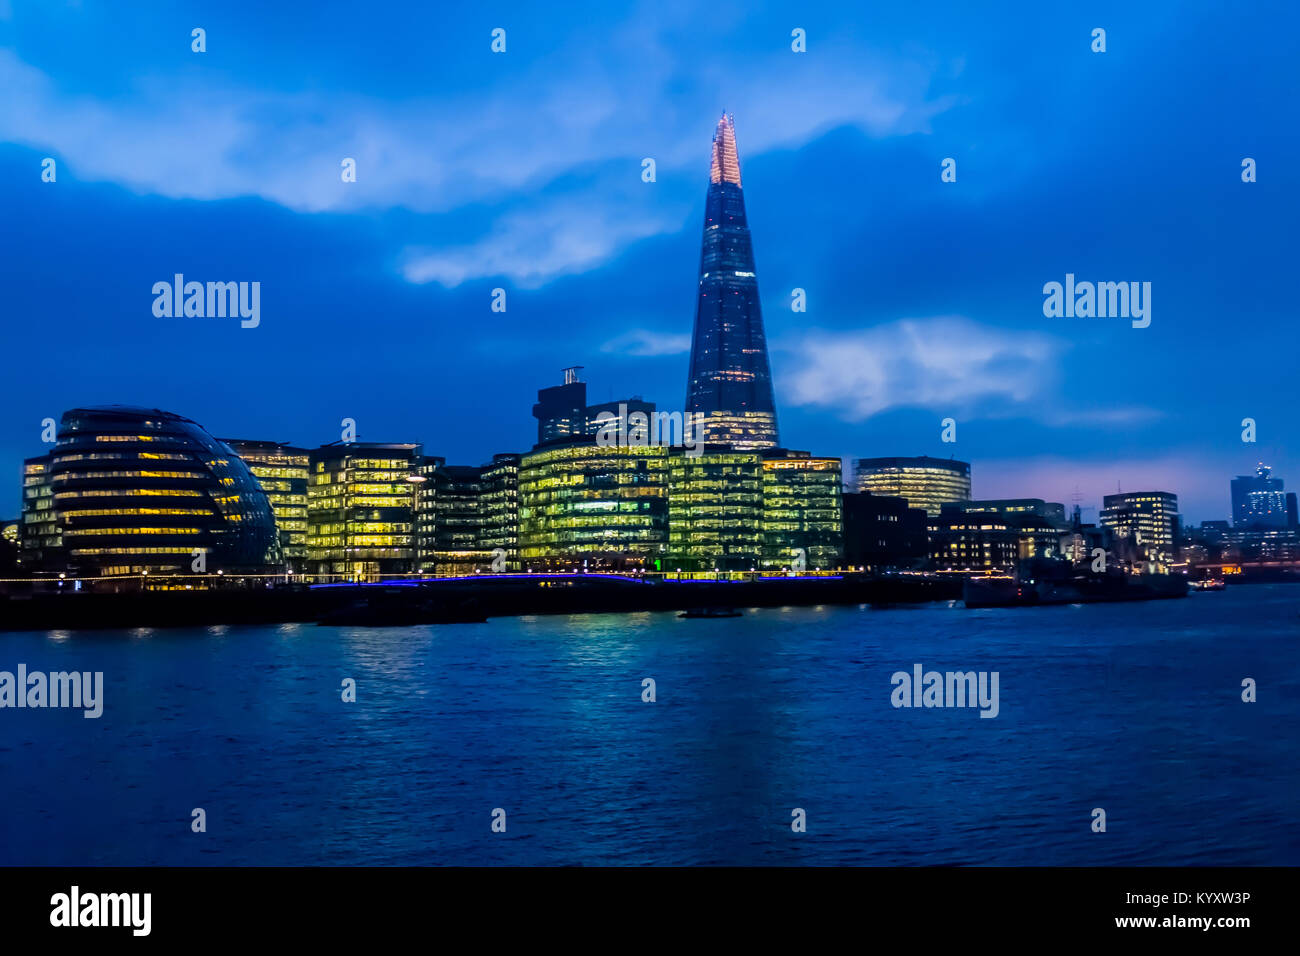 City Hall and The Shard, Embankment / River Thames, London Stock Photo